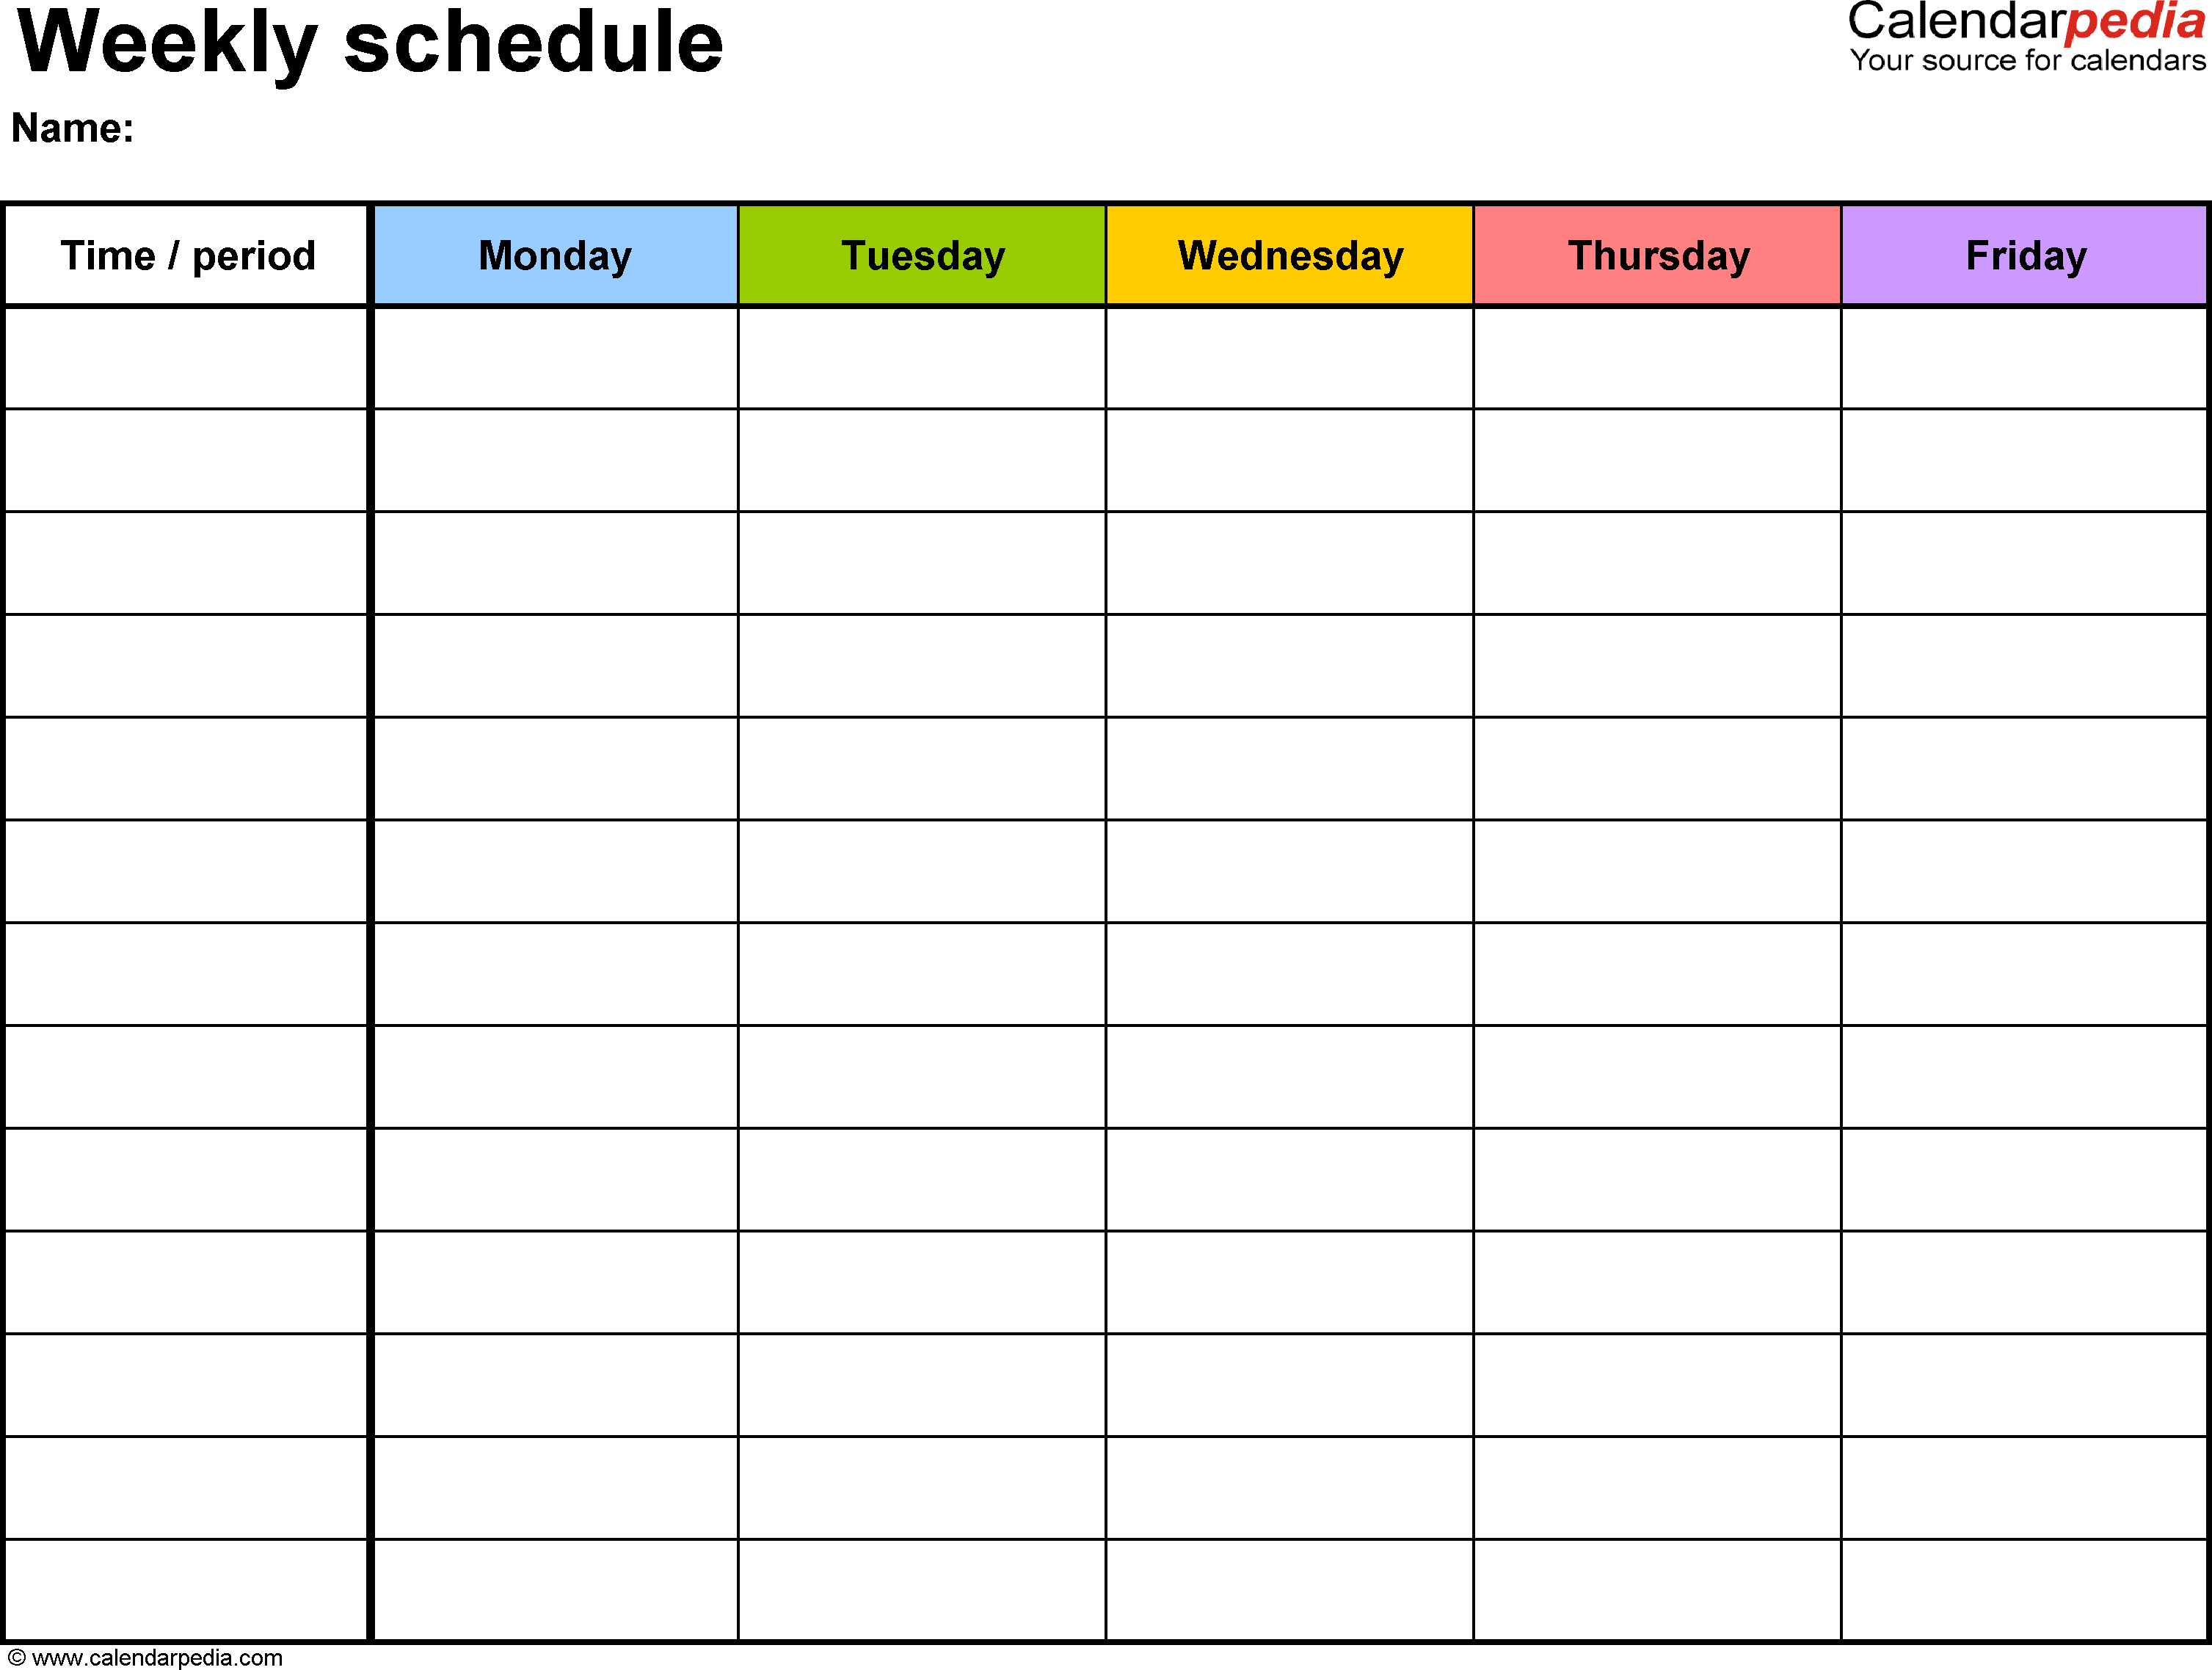 Blank Weekly Calendar With Times - Infer.ifreezer.co inside Weekly Calendar With Time Slots Template